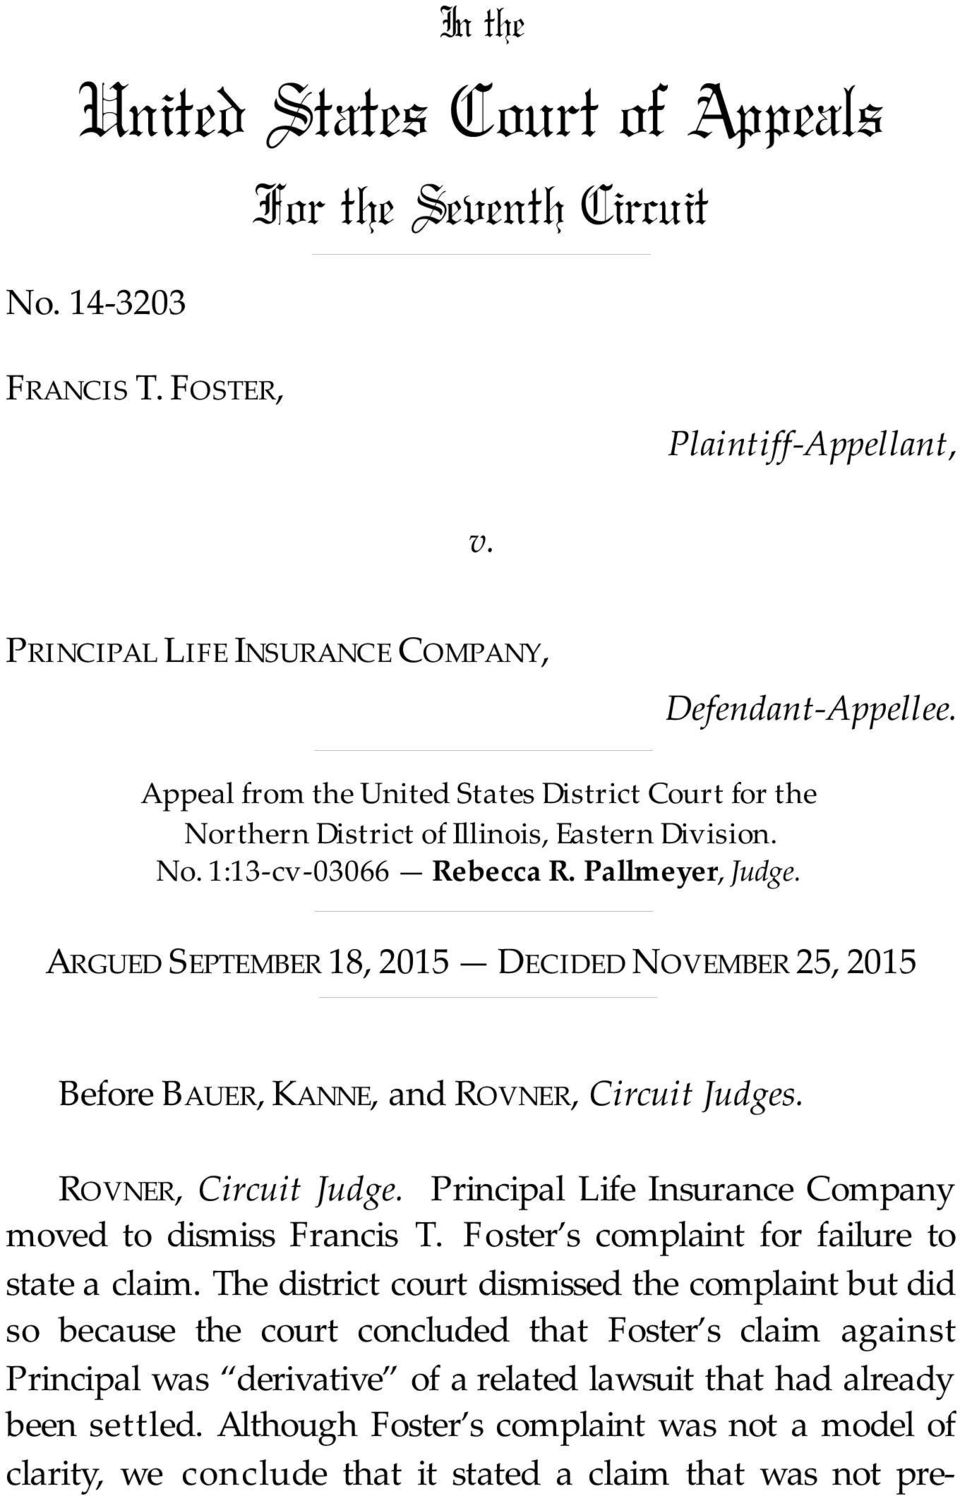 ARGUED SEPTEMBER 18, 2015 DECIDED NOVEMBER 25, 2015 Before BAUER, KANNE, and ROVNER, Circuit Judges. ROVNER, Circuit Judge. Principal Life Insurance Company moved to dismiss Francis T.